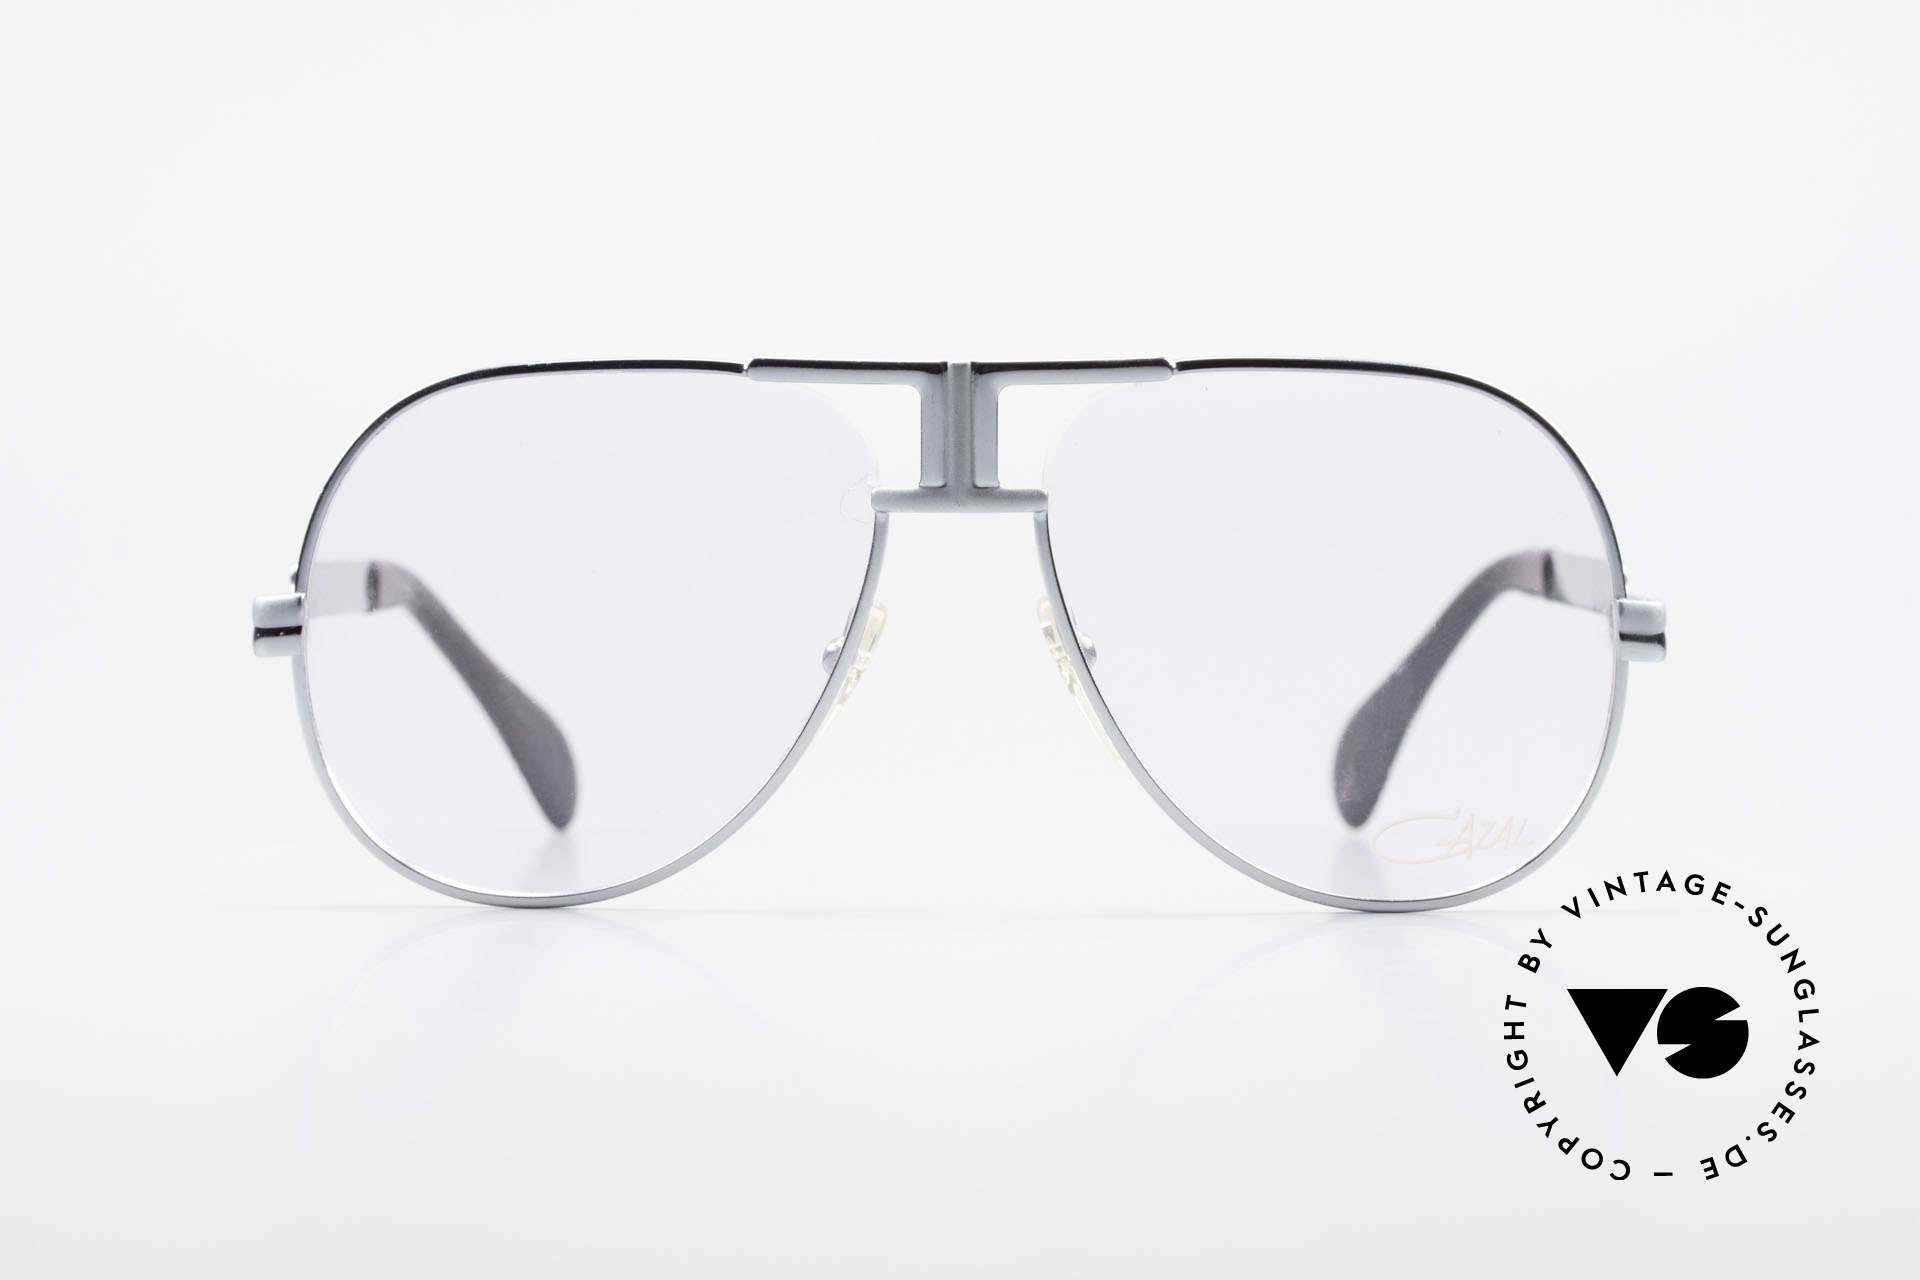 Cazal 702 Ultra Rare 70's Cazal Glasses, monolithic quality, built to last, made in Germany, Made for Men